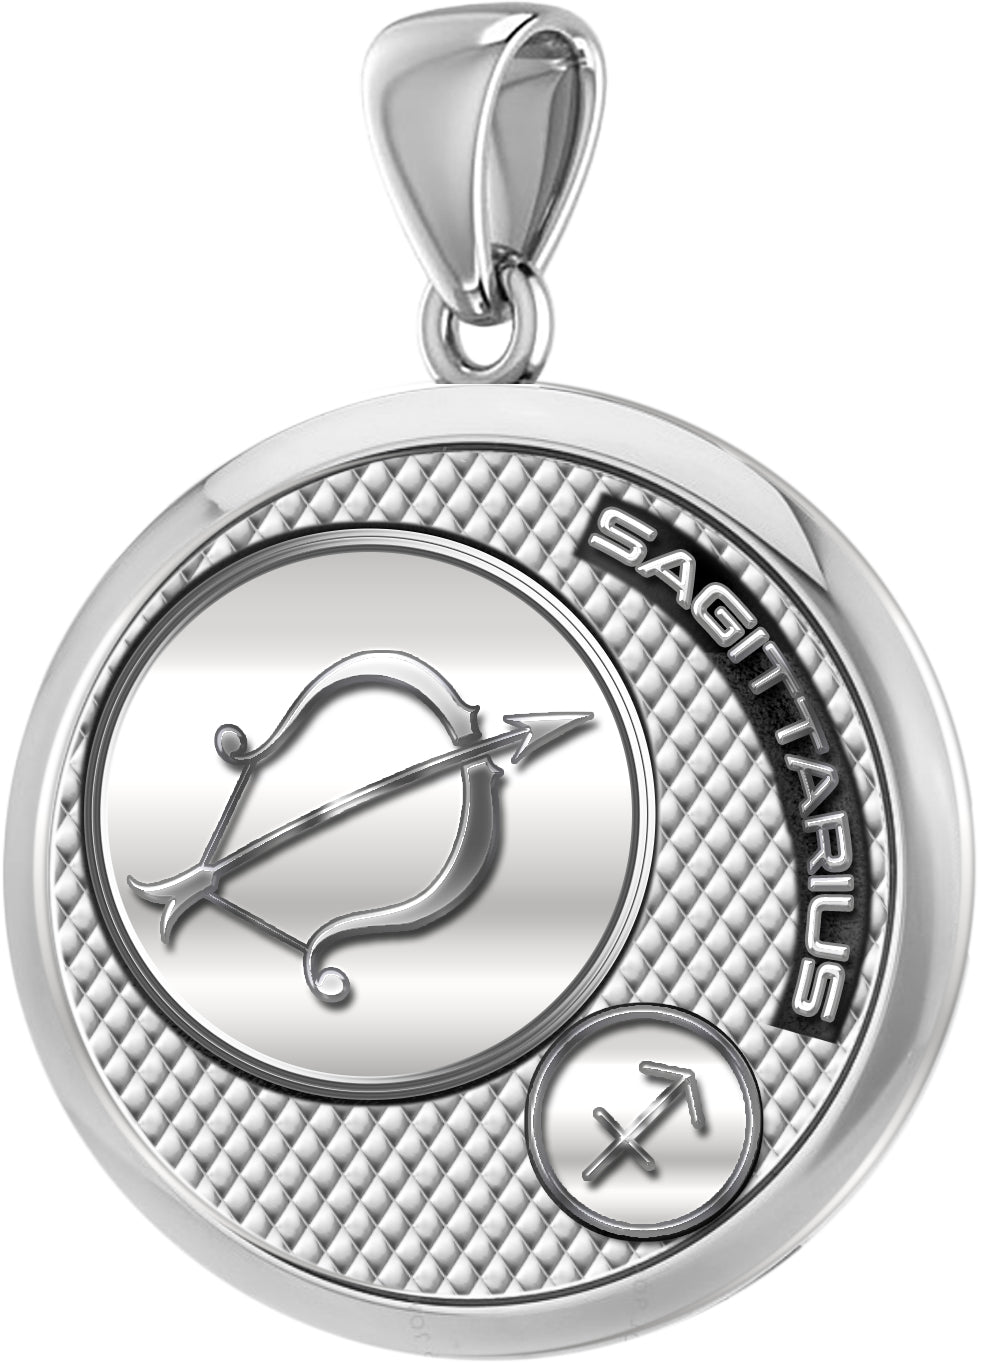 Sagittarius Necklace In Round Shape - Pendant Only